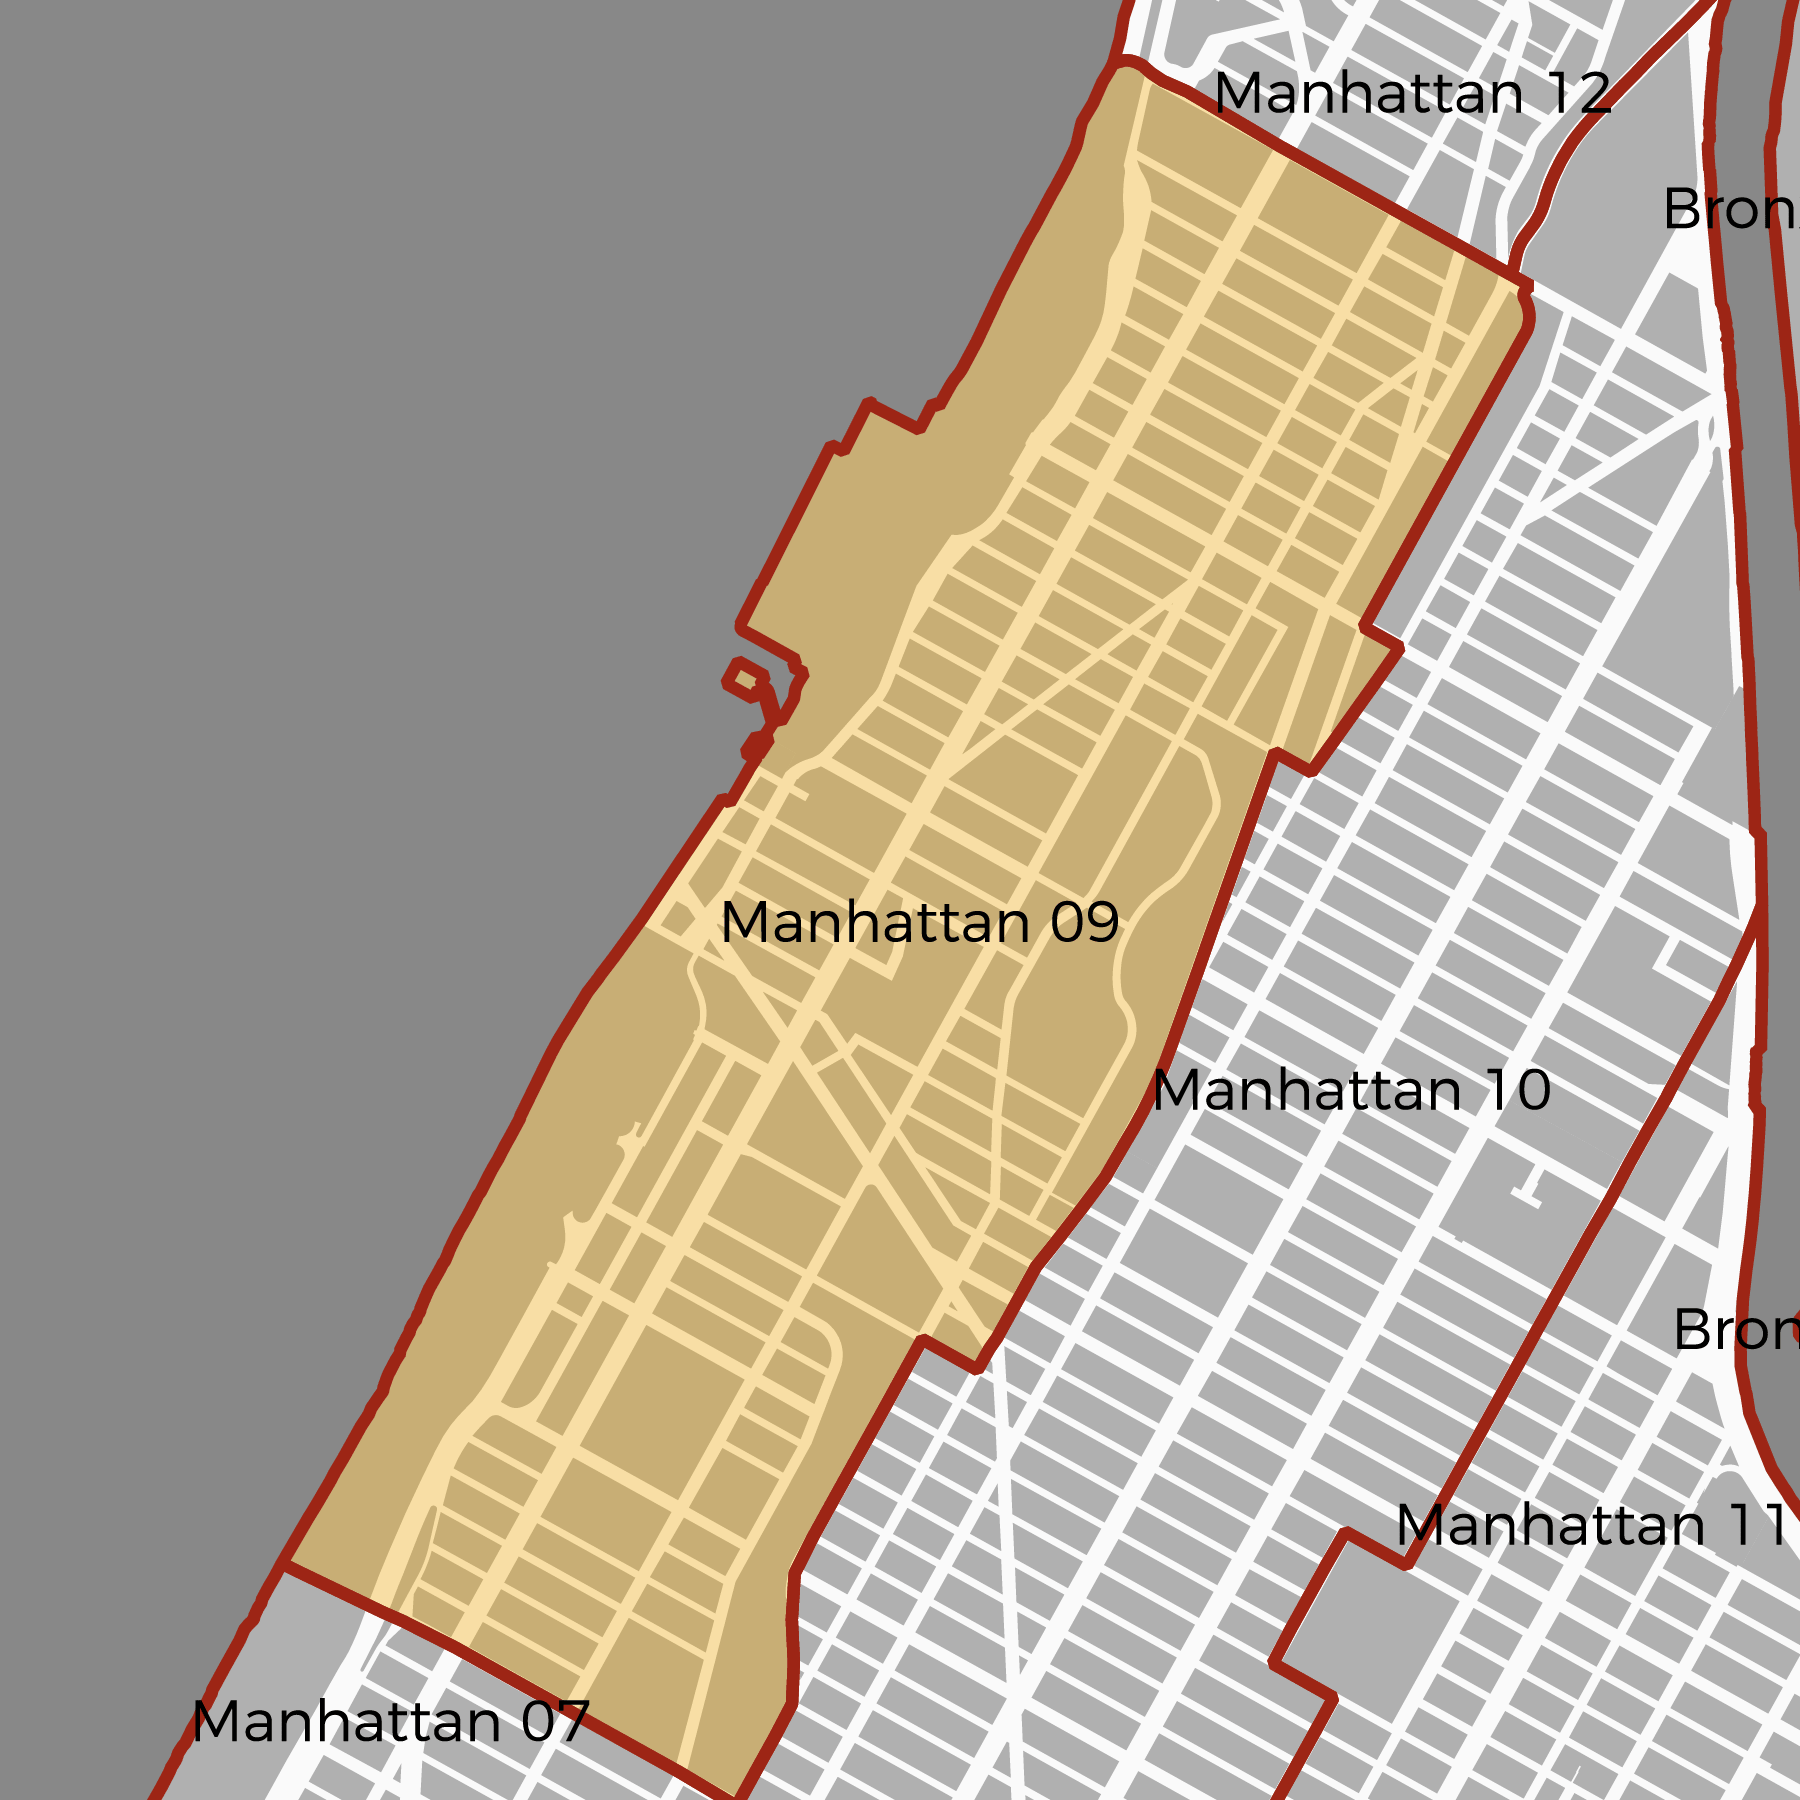 Manhattan Community Board 9